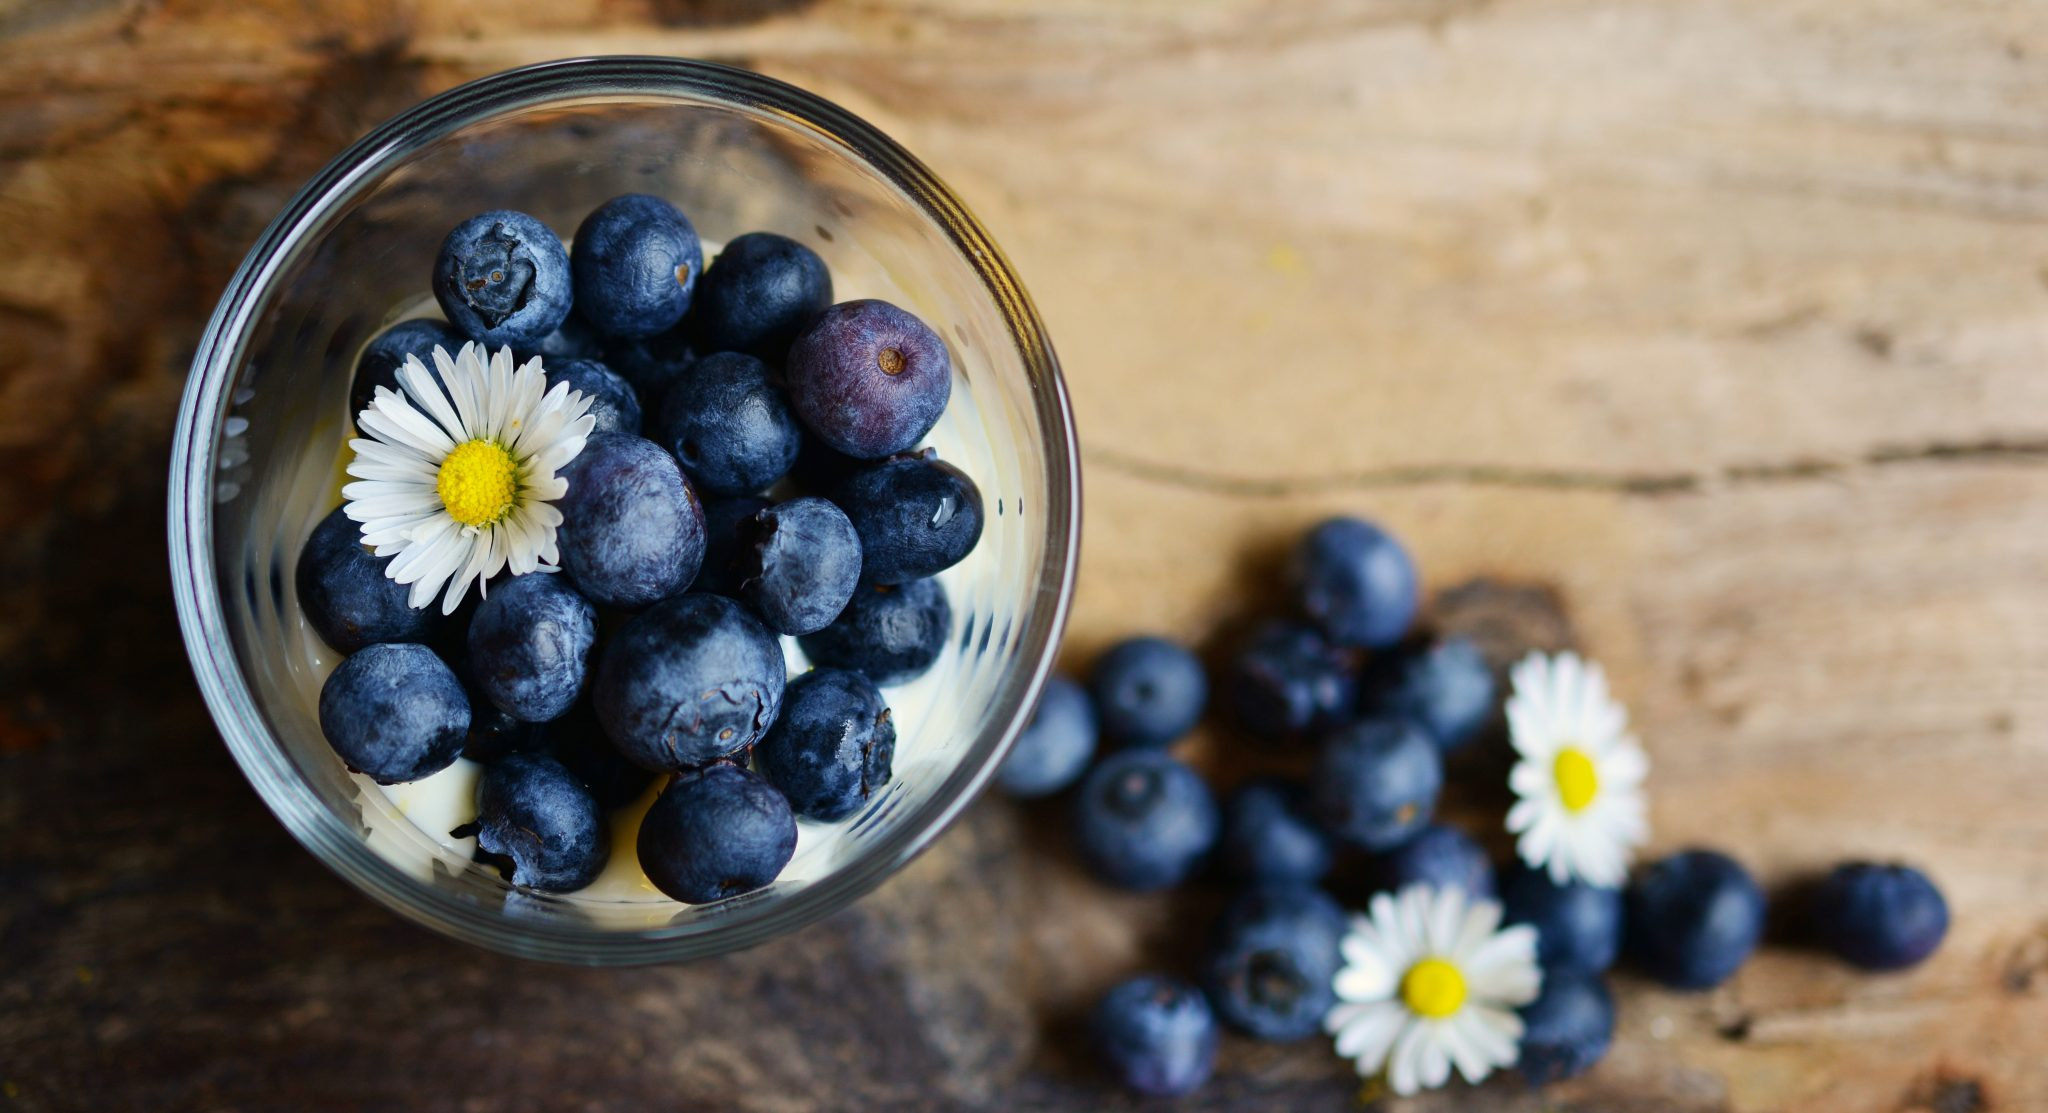 B12 Plant Based Diet Blueberries